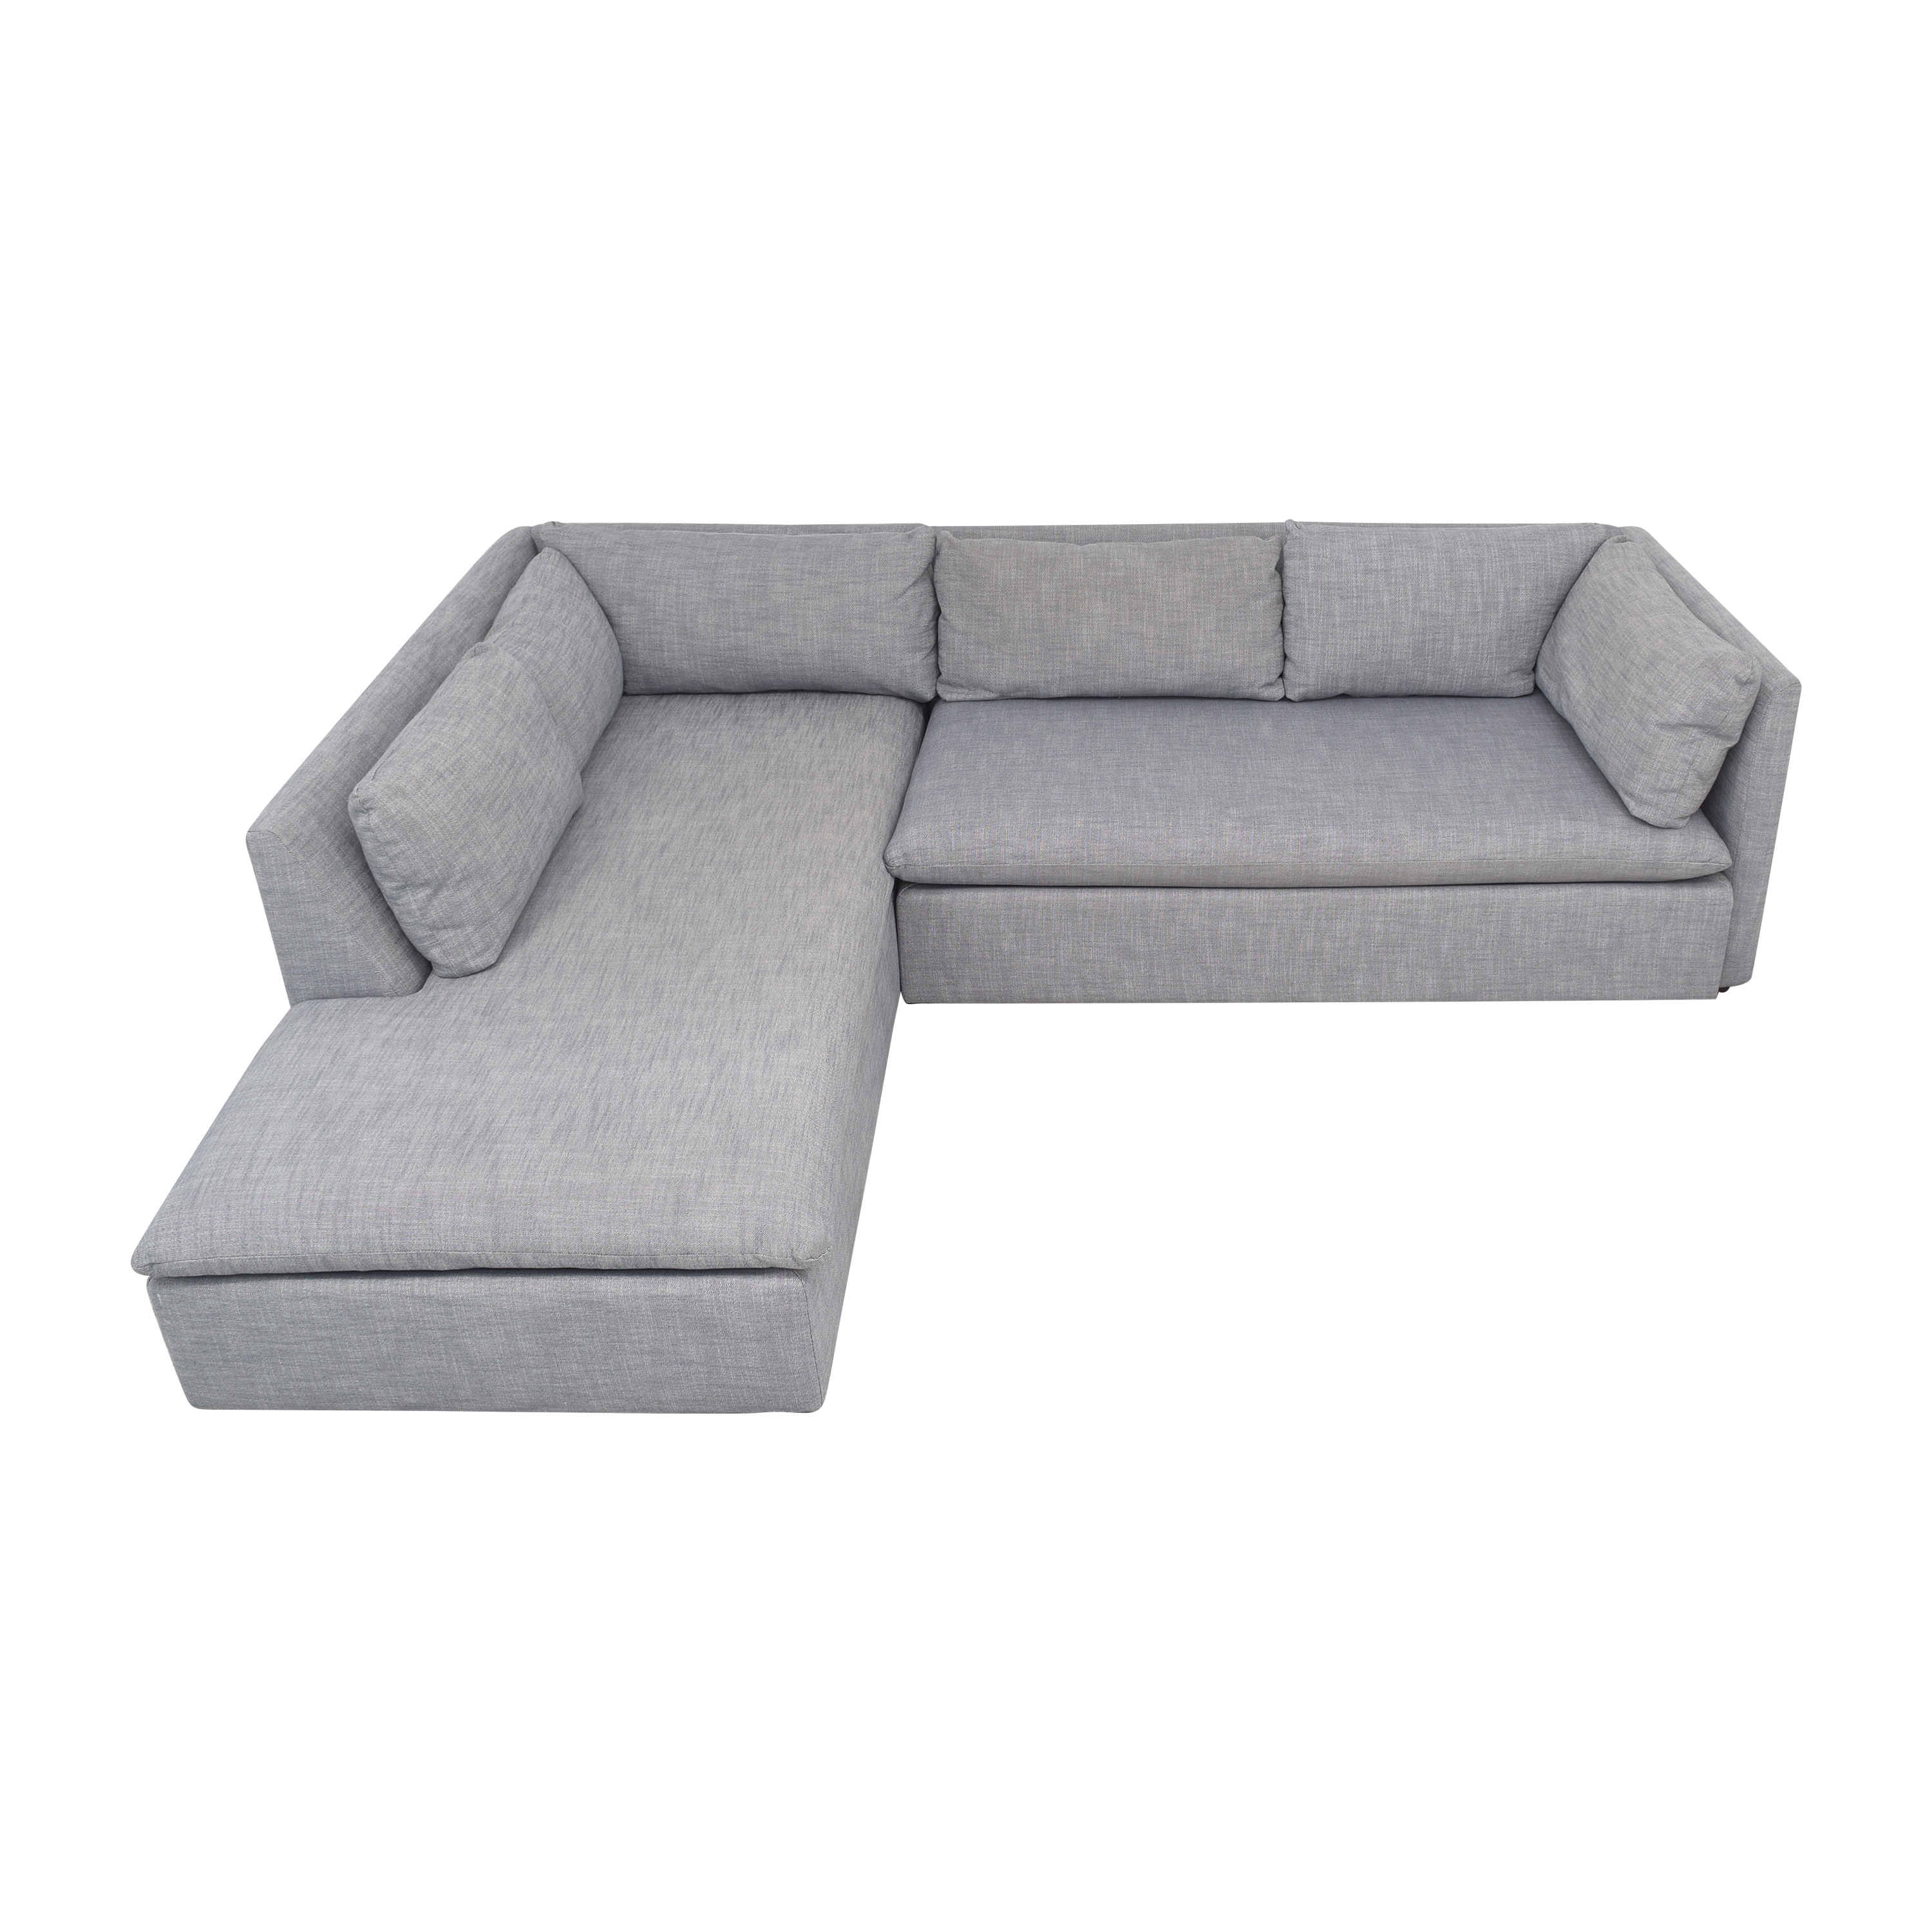 West Elm West Elm Shelter 2-Piece Terminal Chaise Sectional for sale